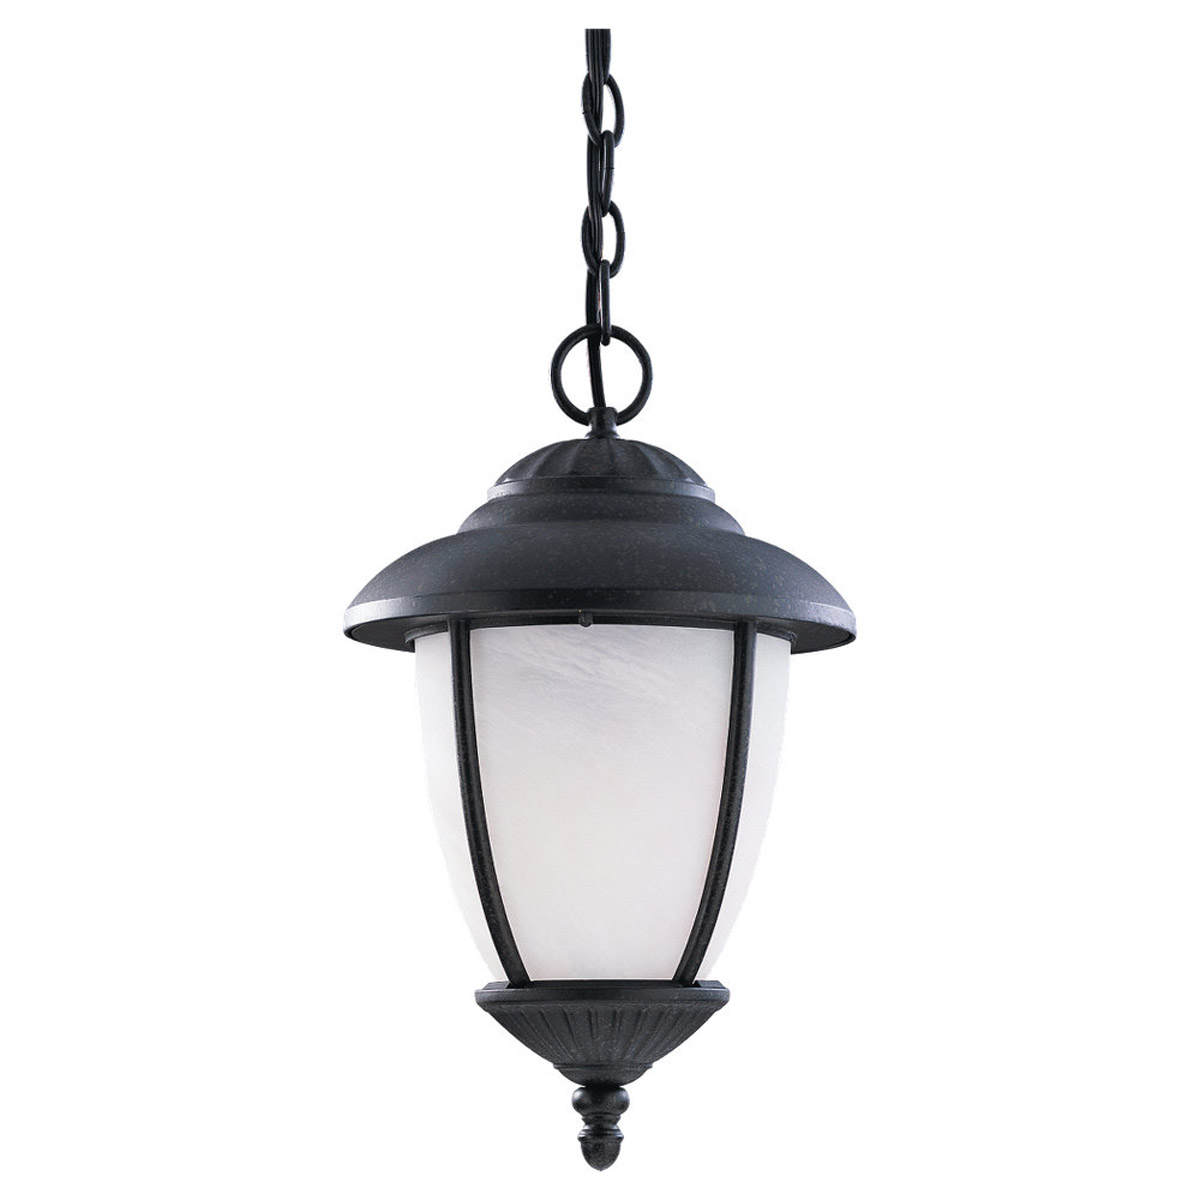 Sea Gull Lighting Yorktown 1 Light Outdoor Pendant in Forged Iron 60048-185